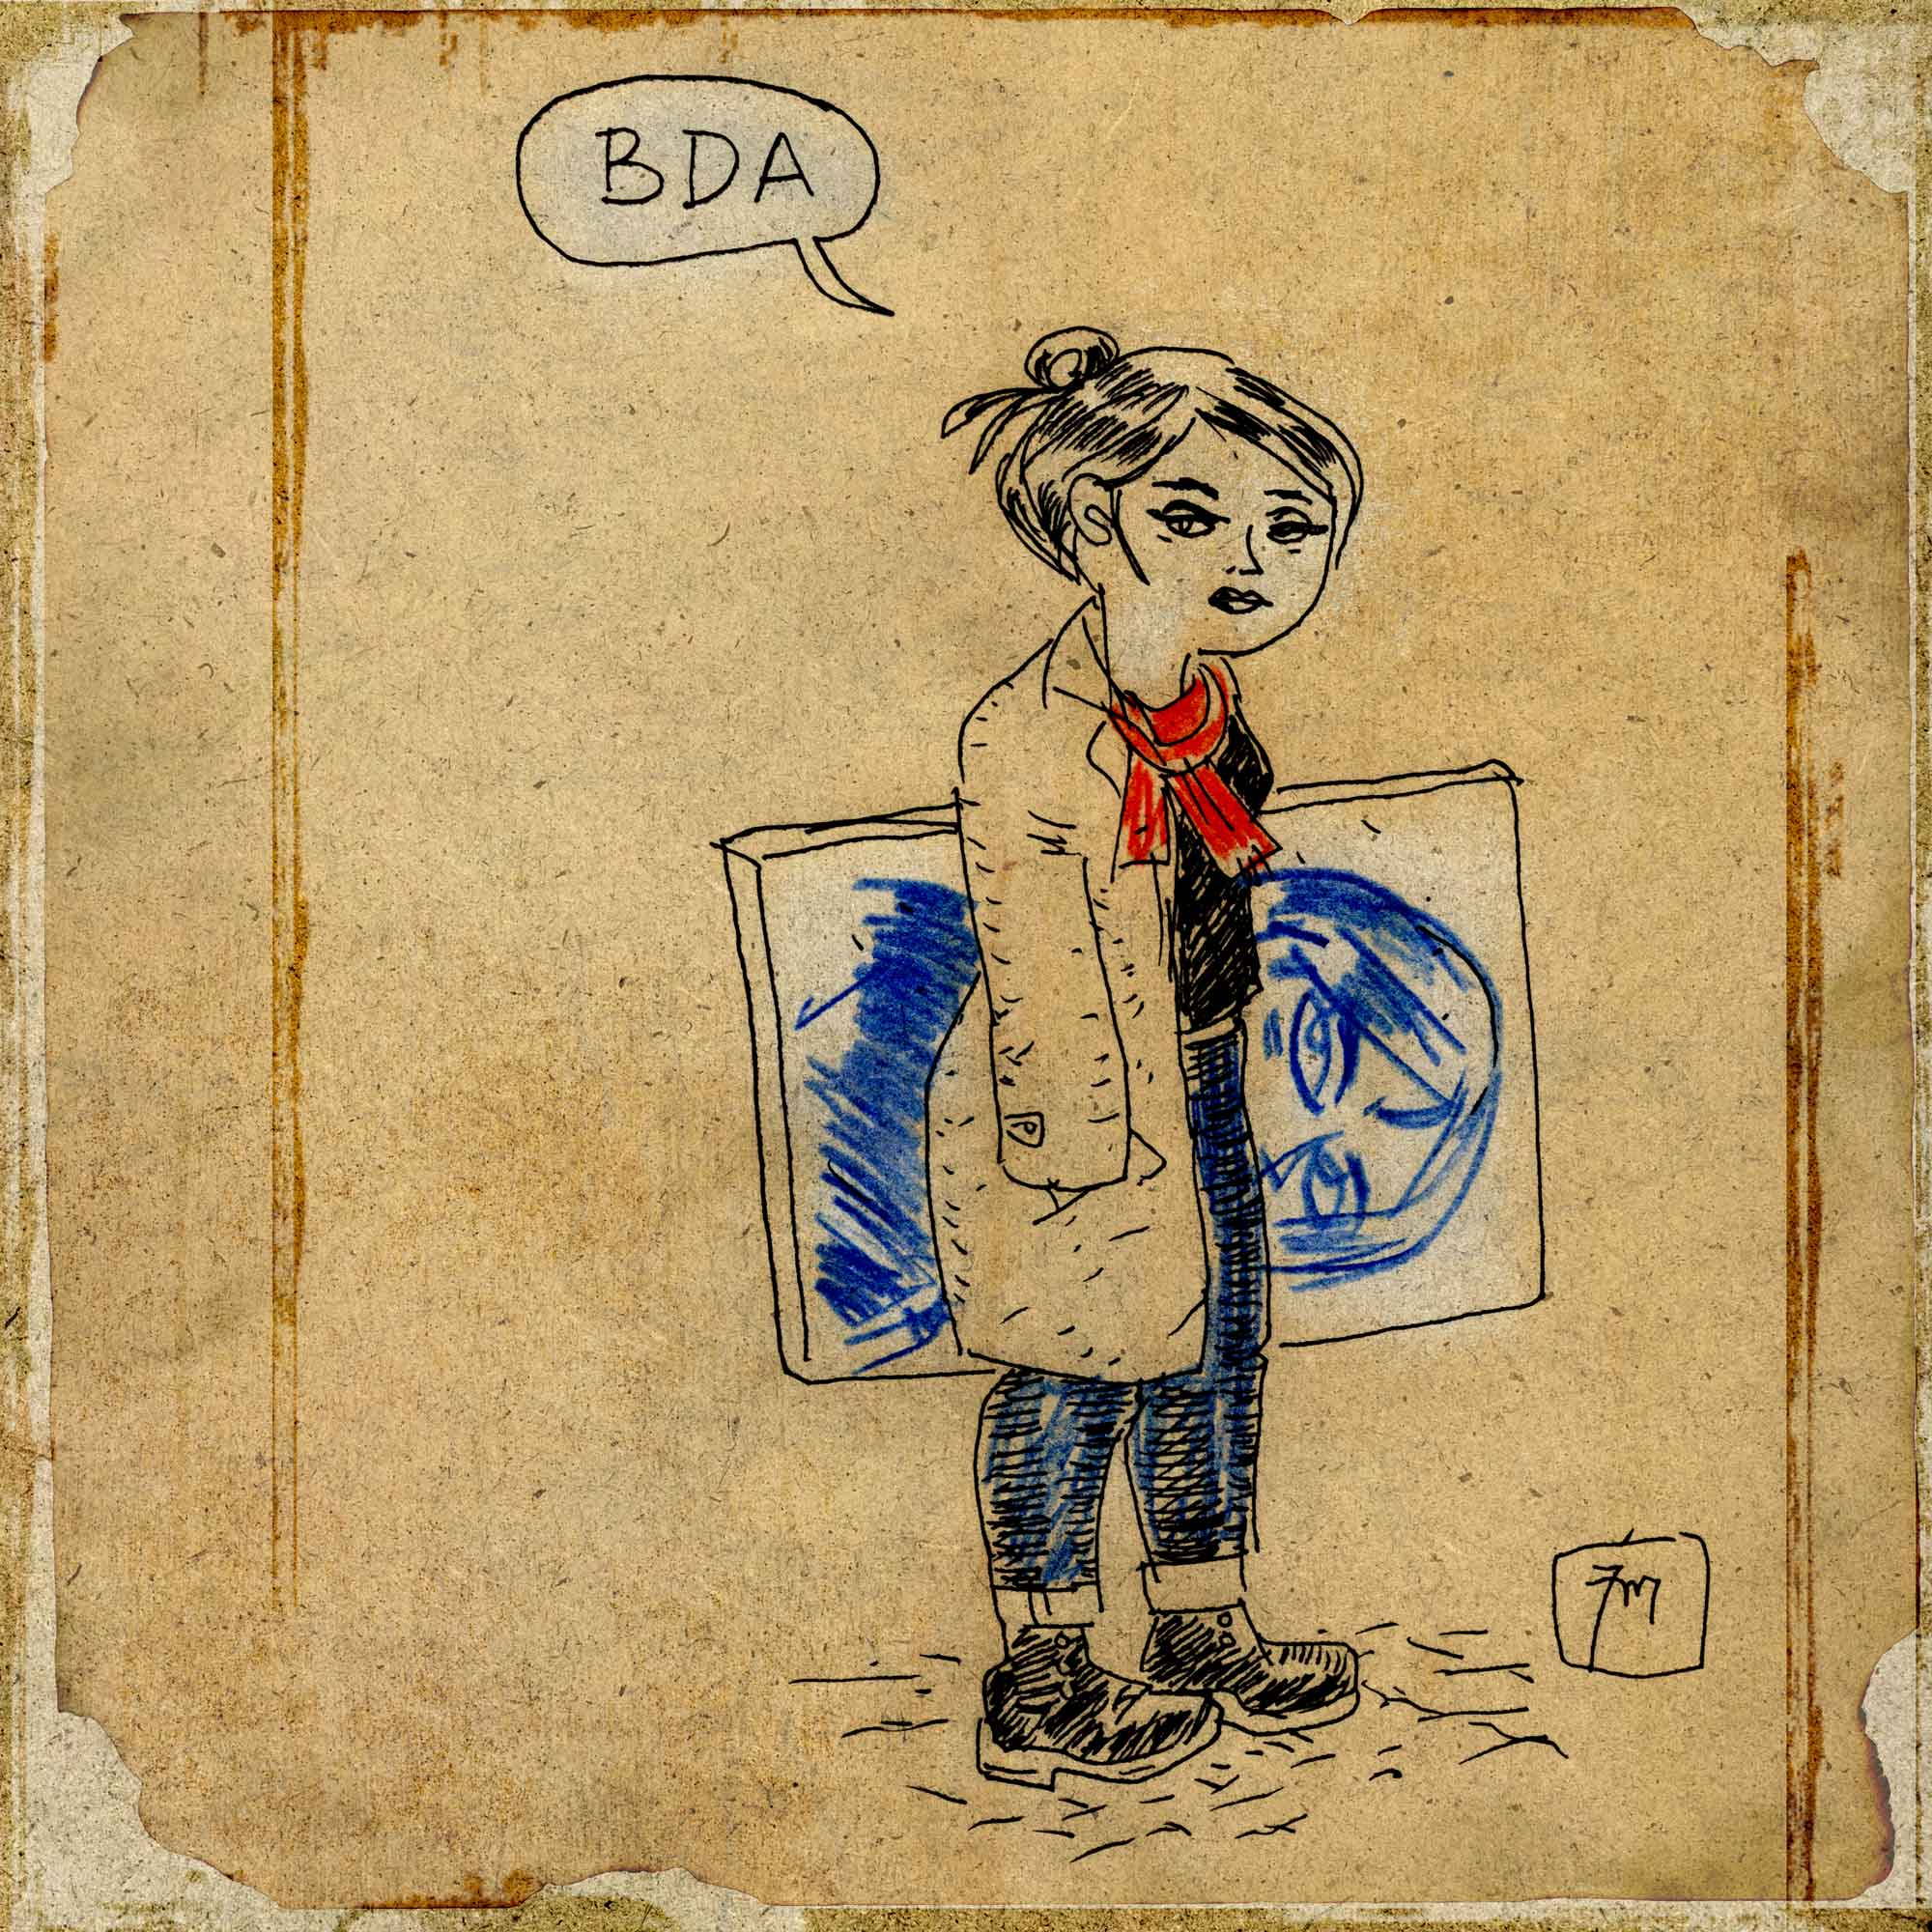 illustration titled: BDA